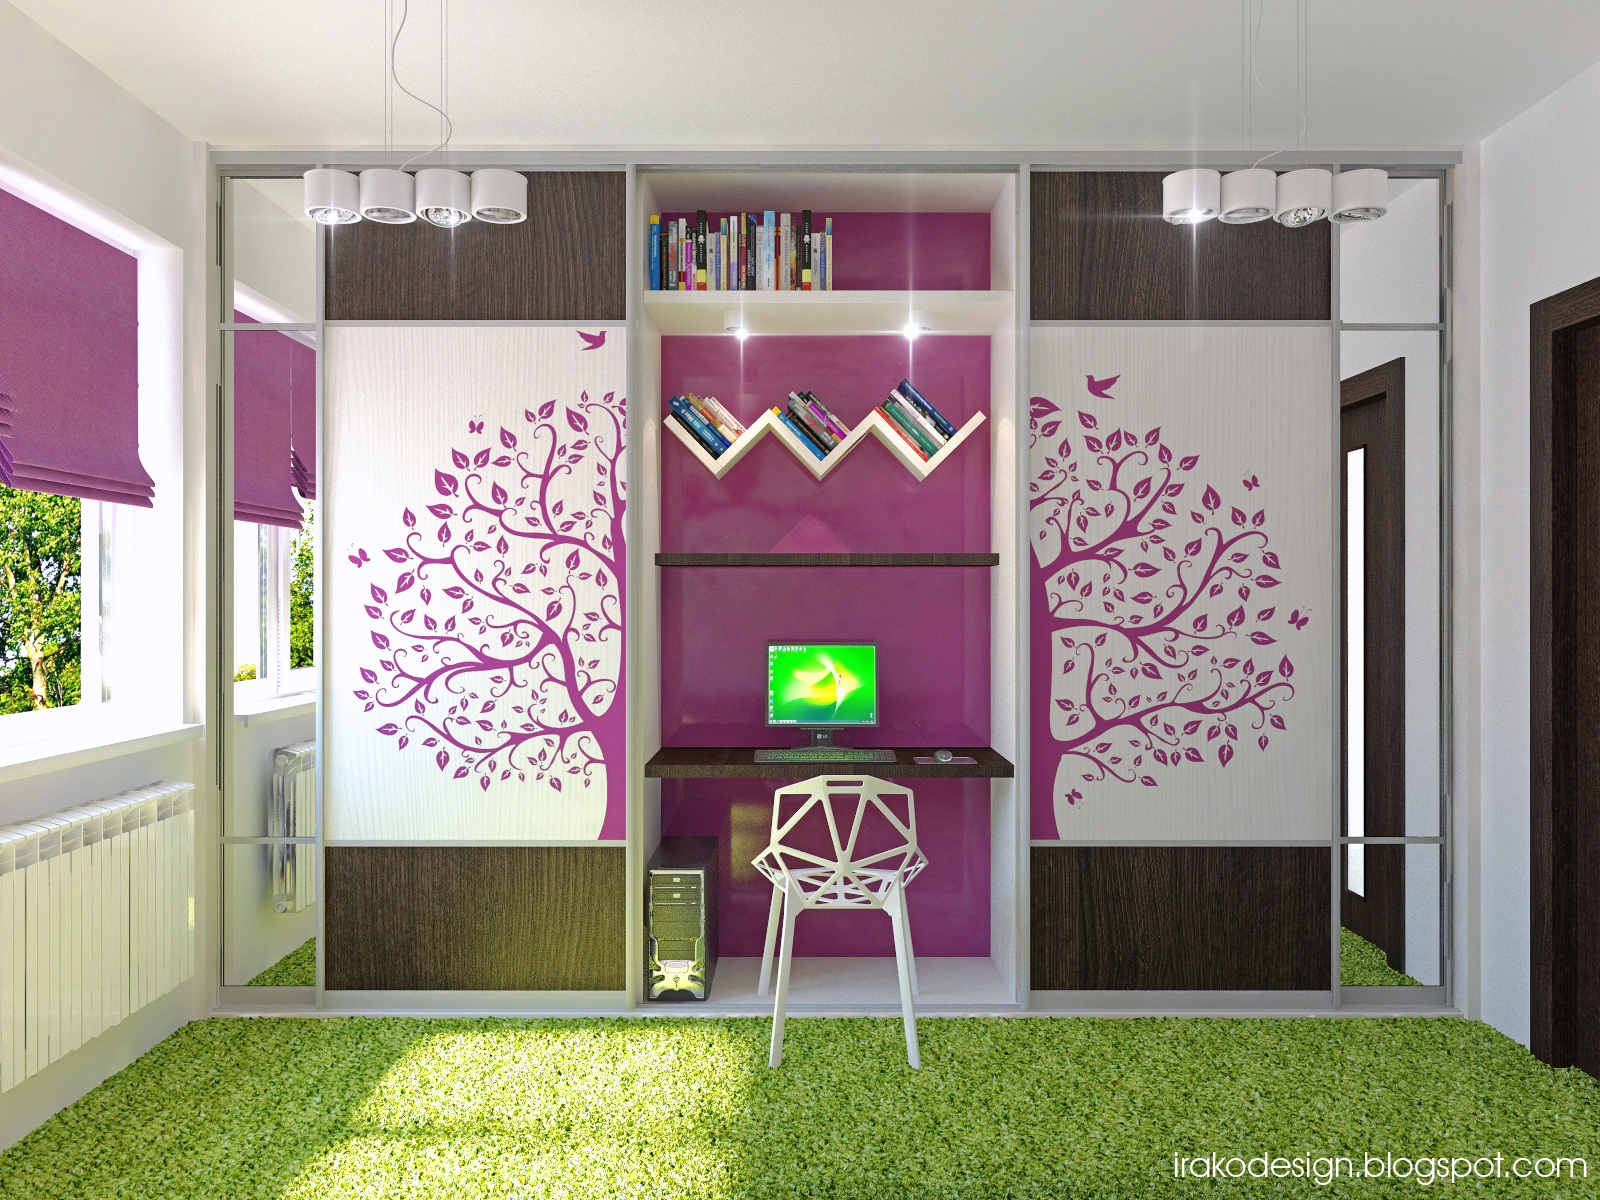 Bedrooms for girls green - Bedrooms For Girls Green 11